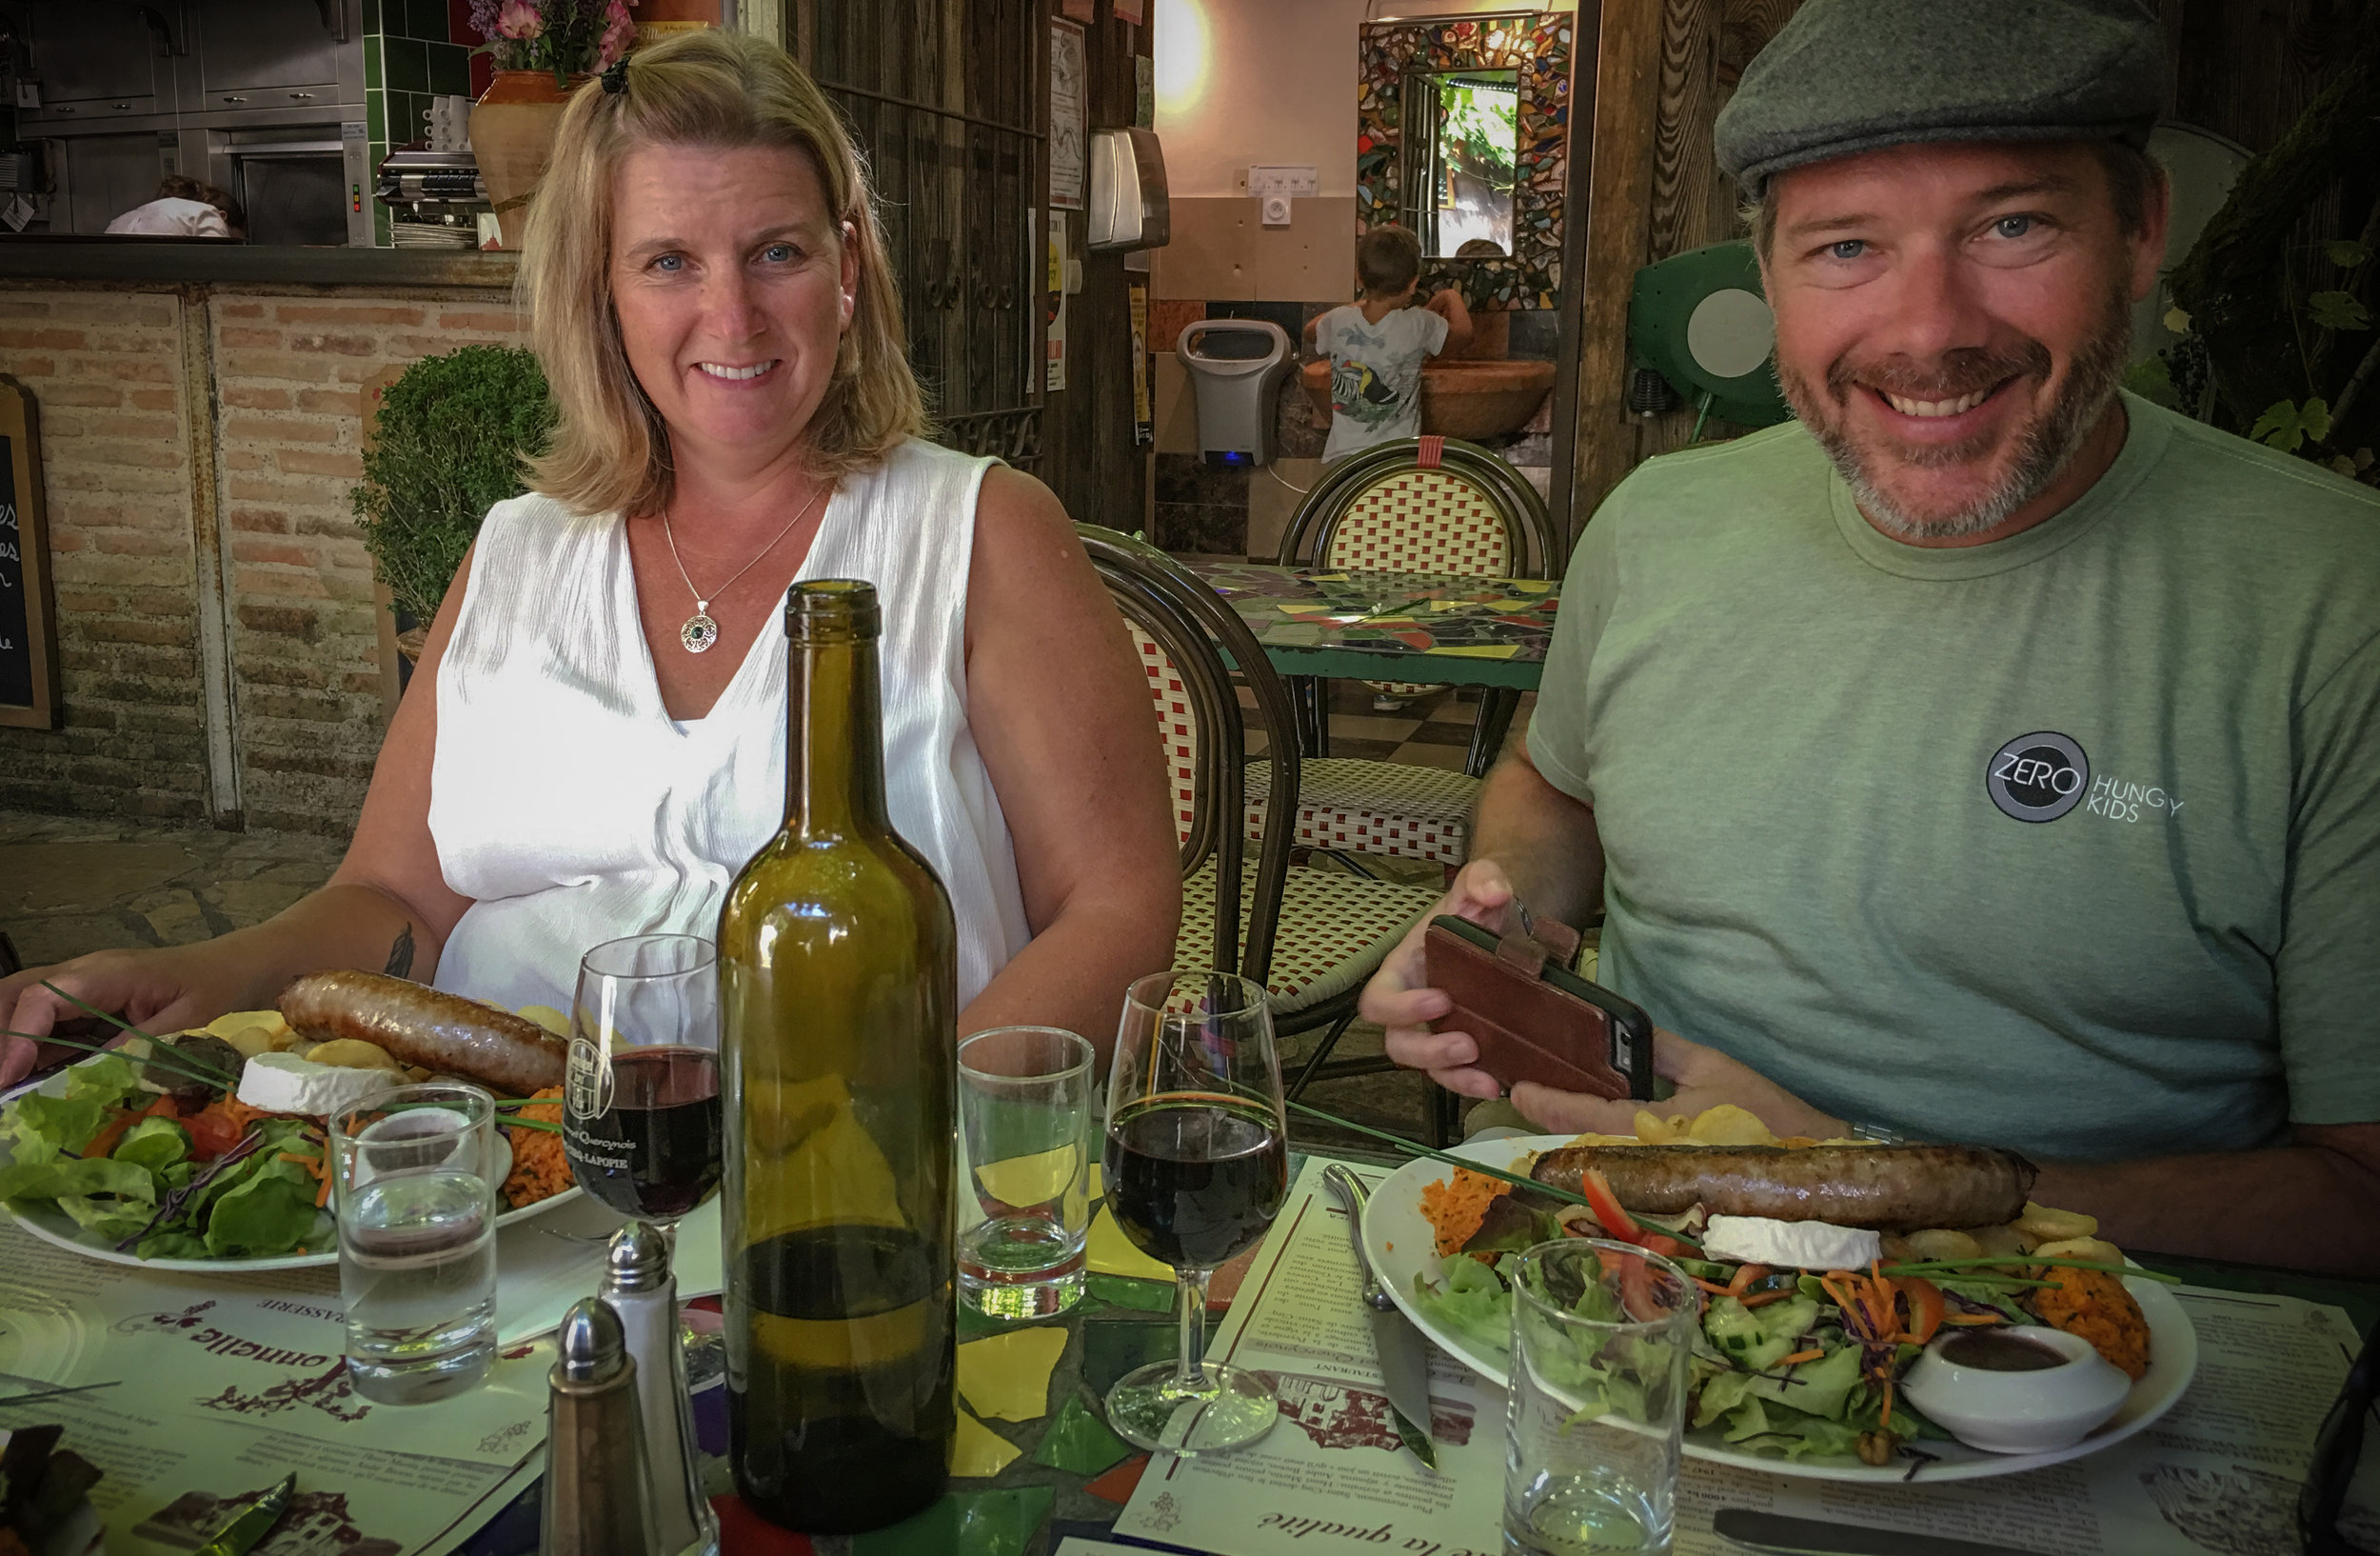 Sue and Jason just got served lunch at a St. Cirq La Popie restaurant